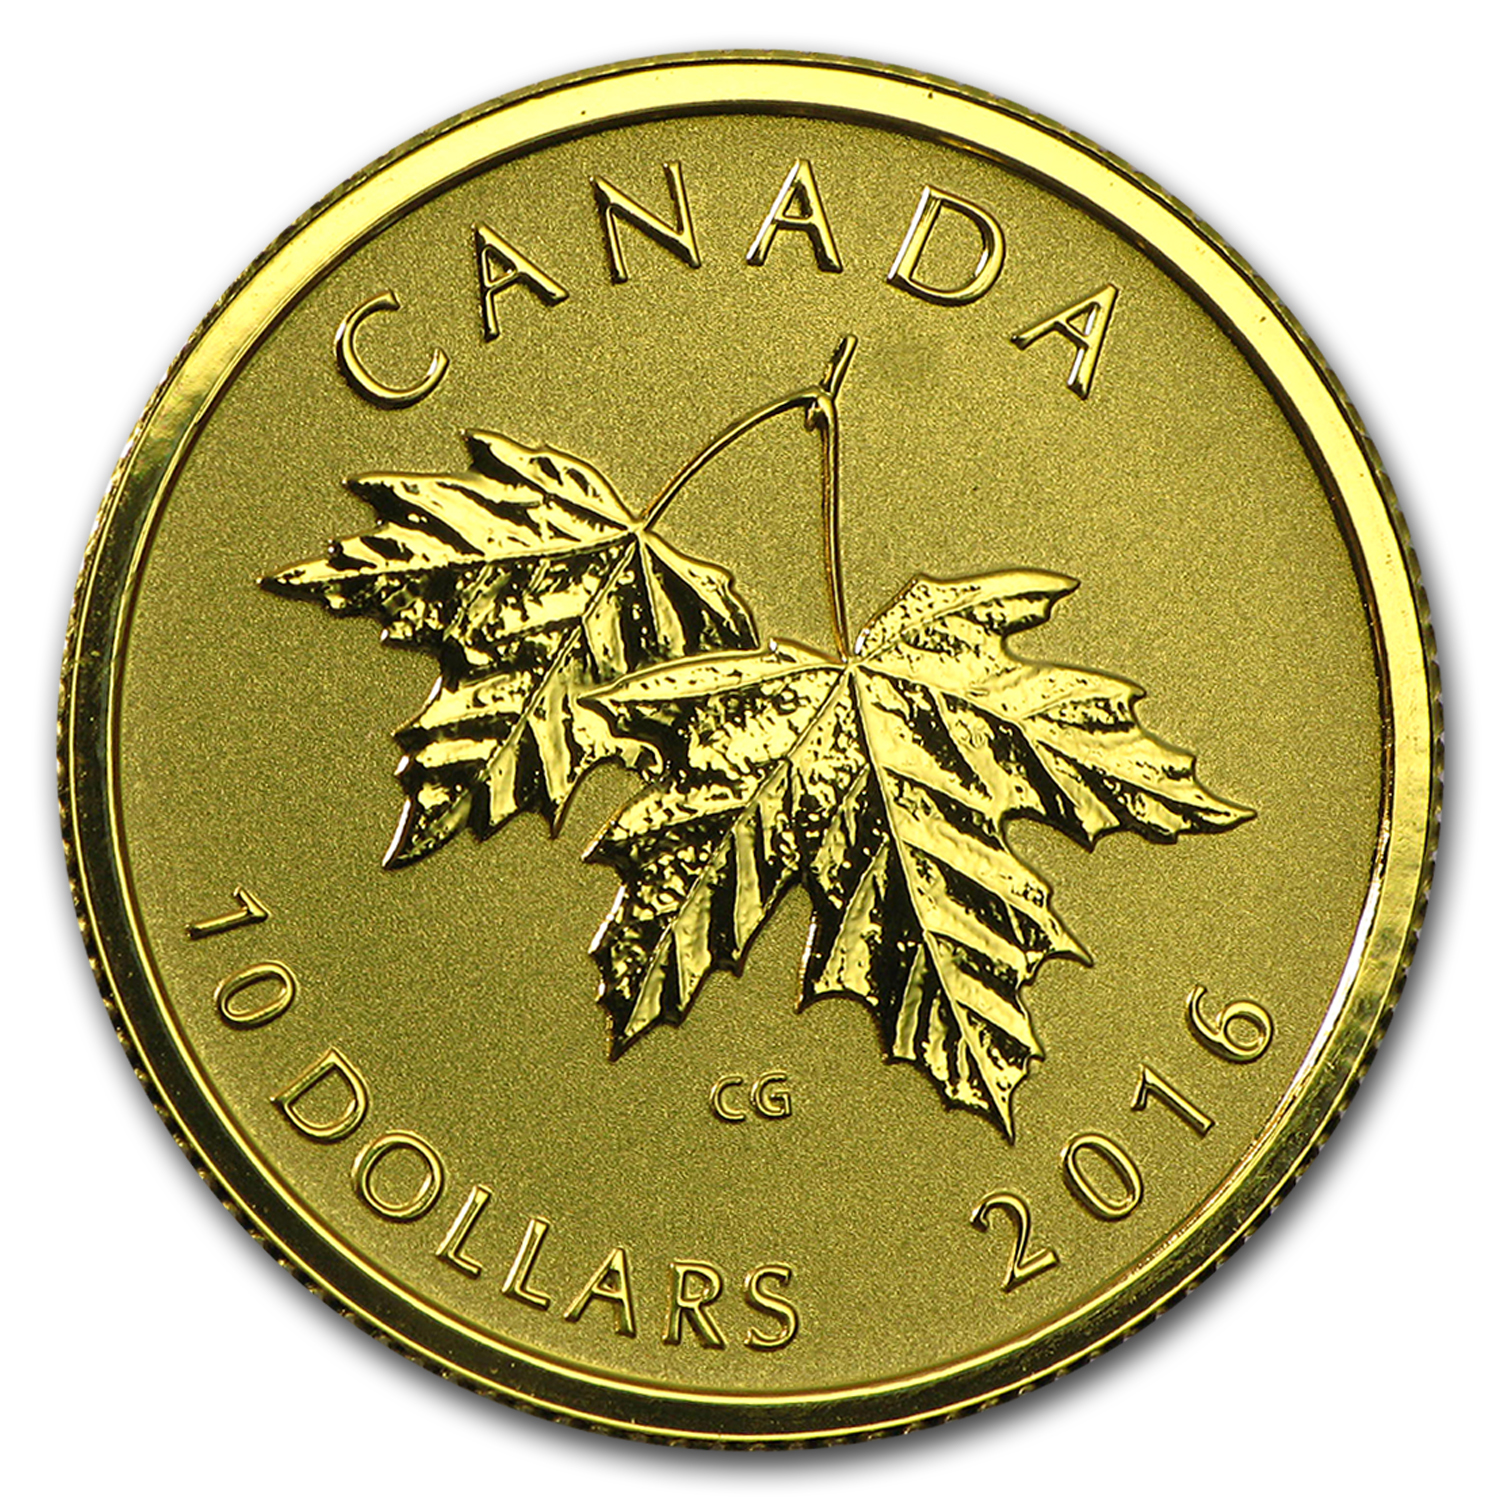 2016 Canada 1/4 oz Gold $10 Maple Leaf (2003 Queen Effigy)